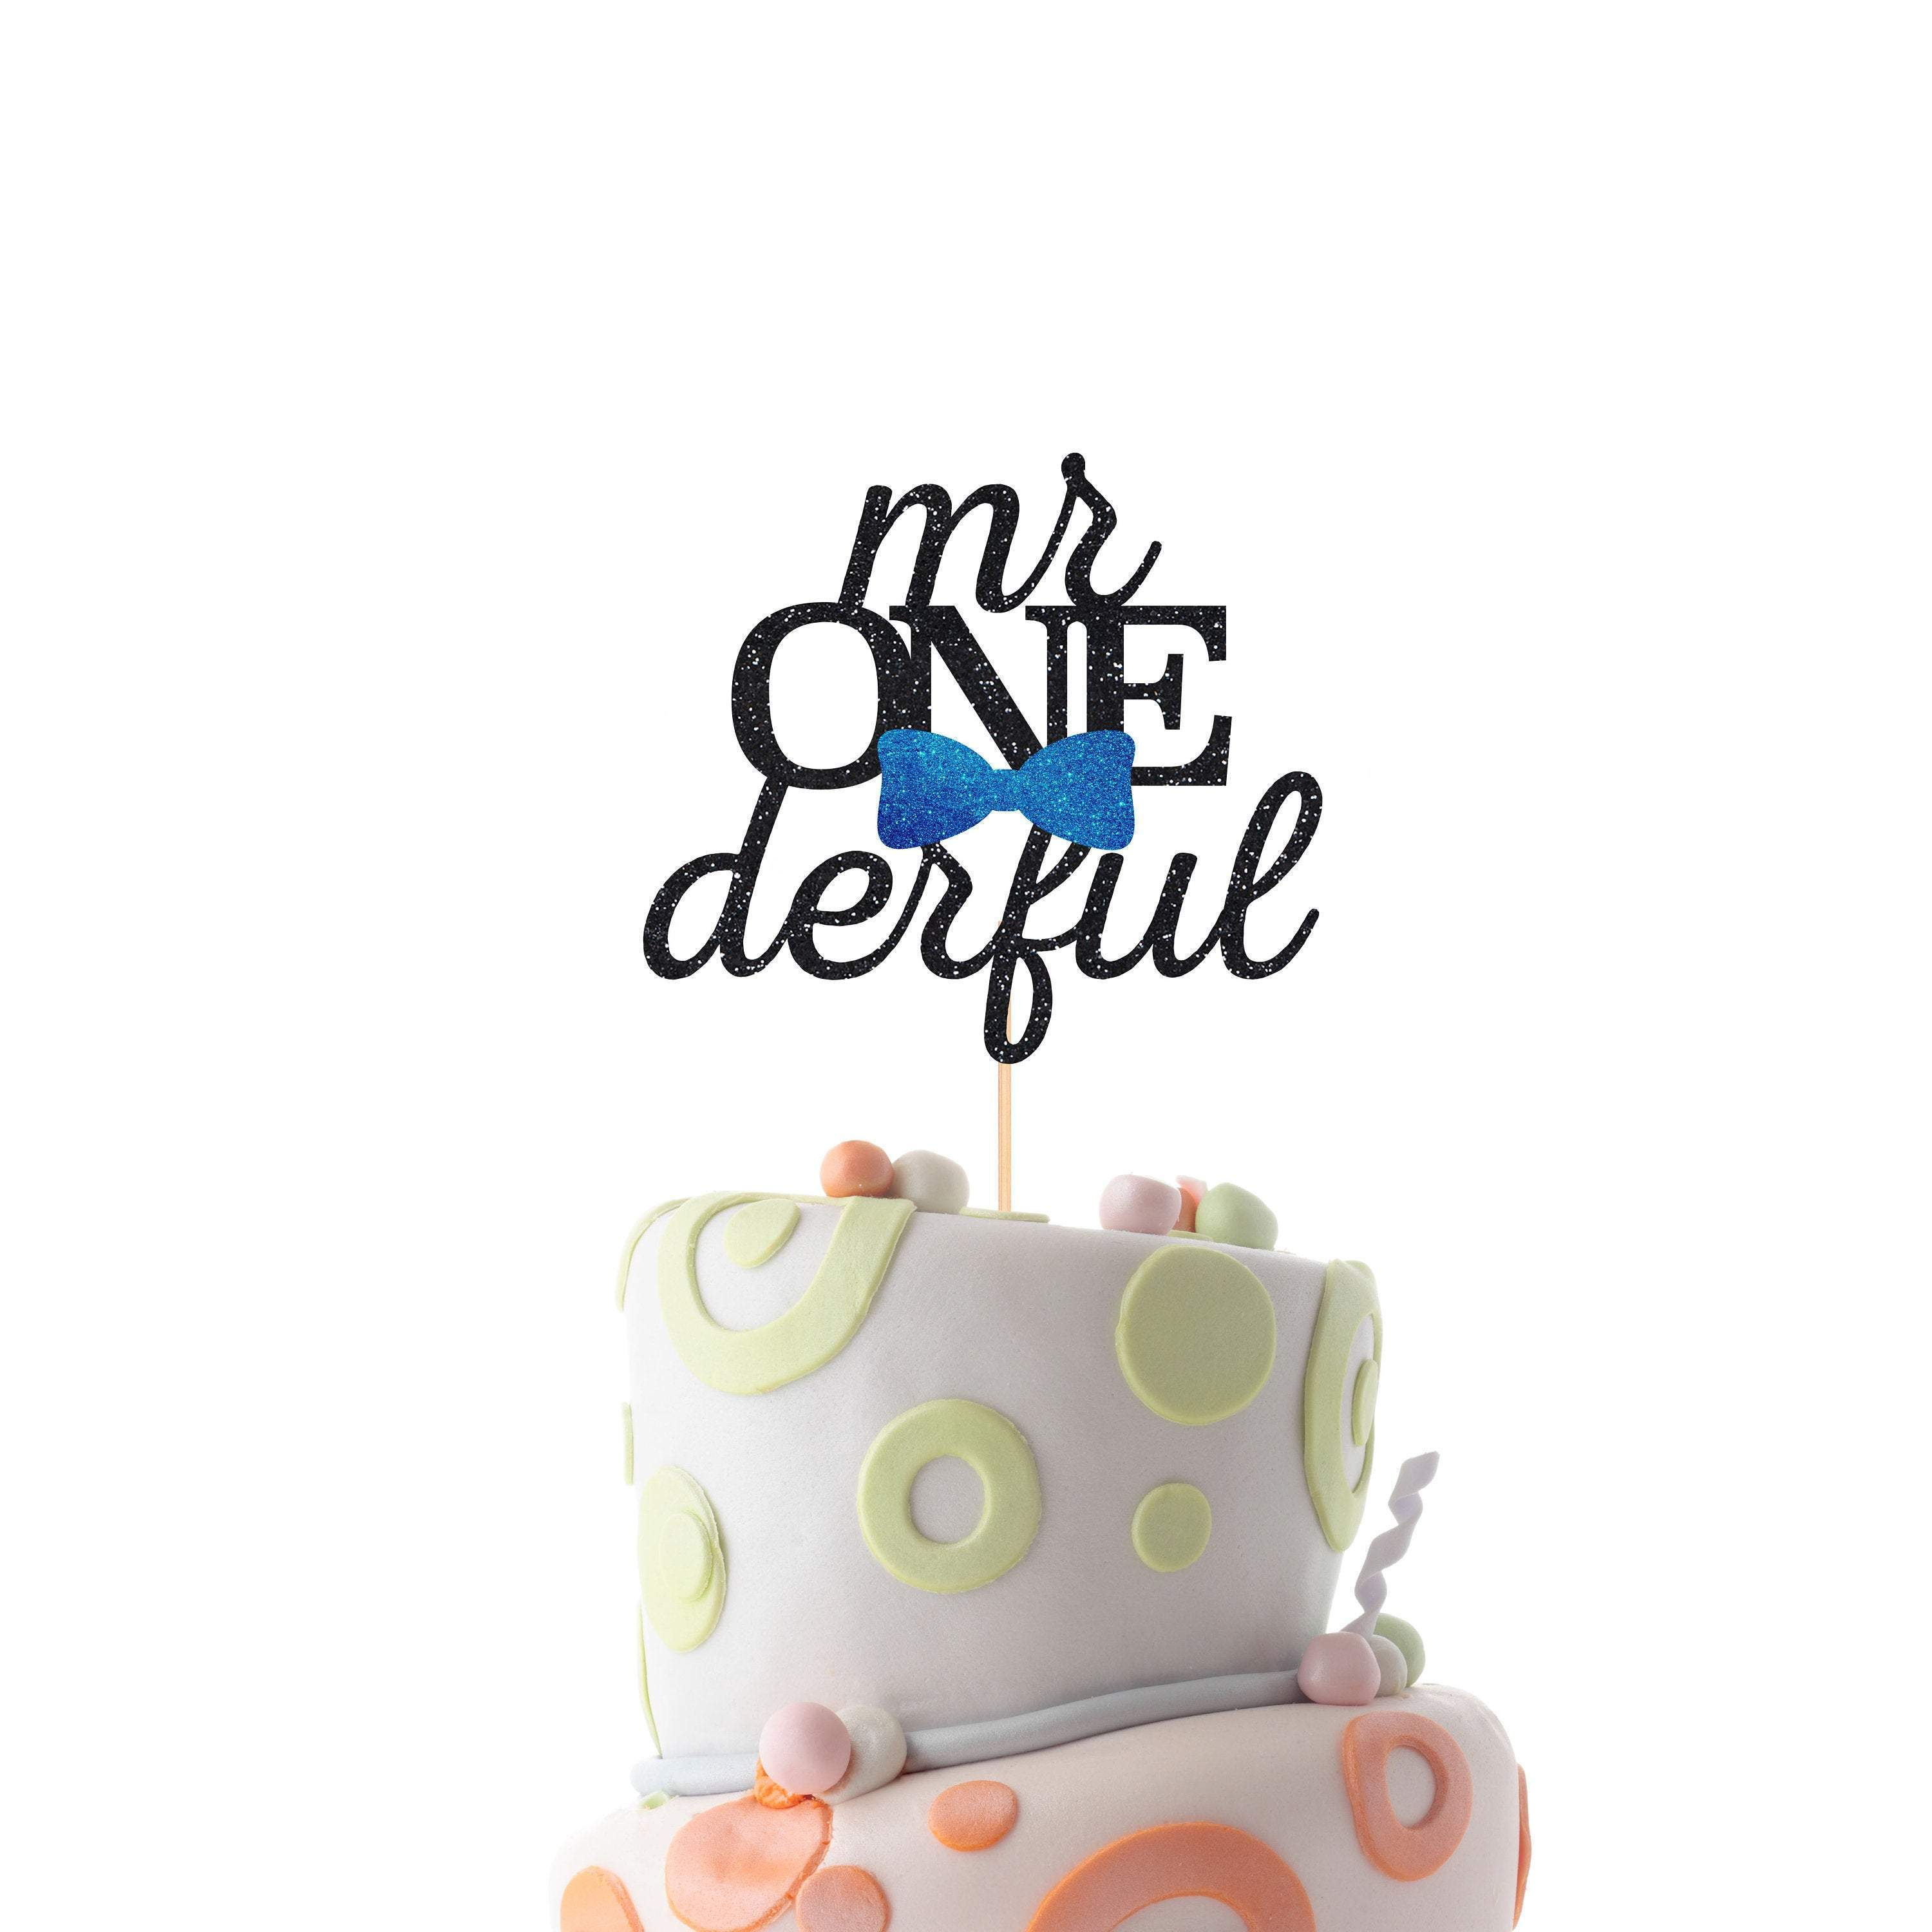 Outstanding Mr Onederful Cake Topper With Bow Tie Cute First Birthday Party Personalised Birthday Cards Veneteletsinfo